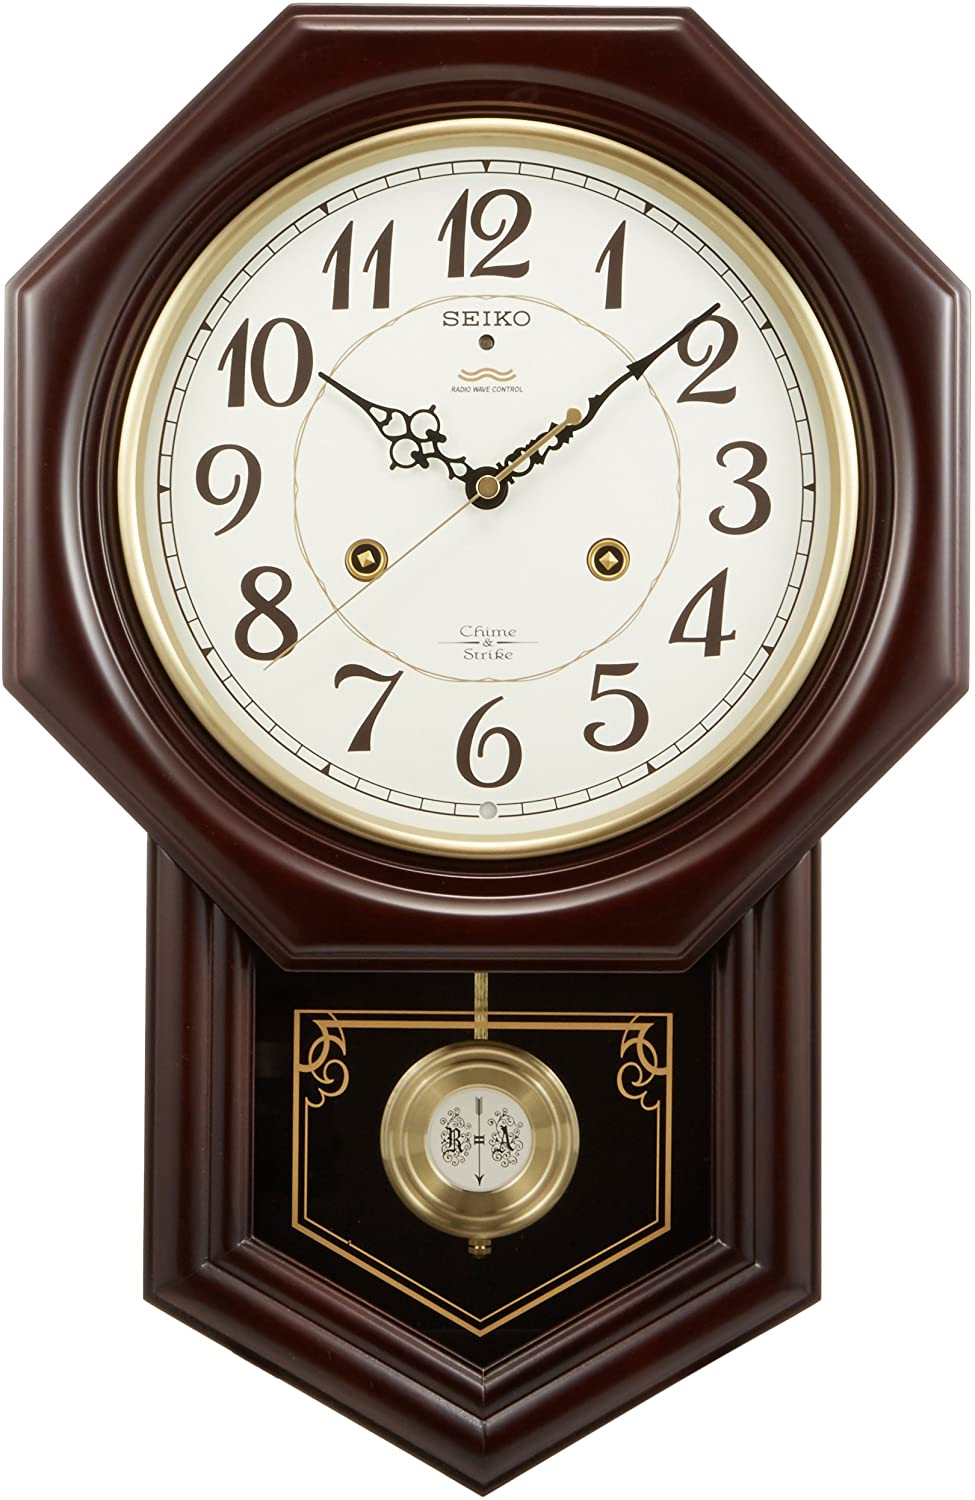 Seiko Wall Clock Chime and Strike Radio Clock Twin -Pas RQ205B